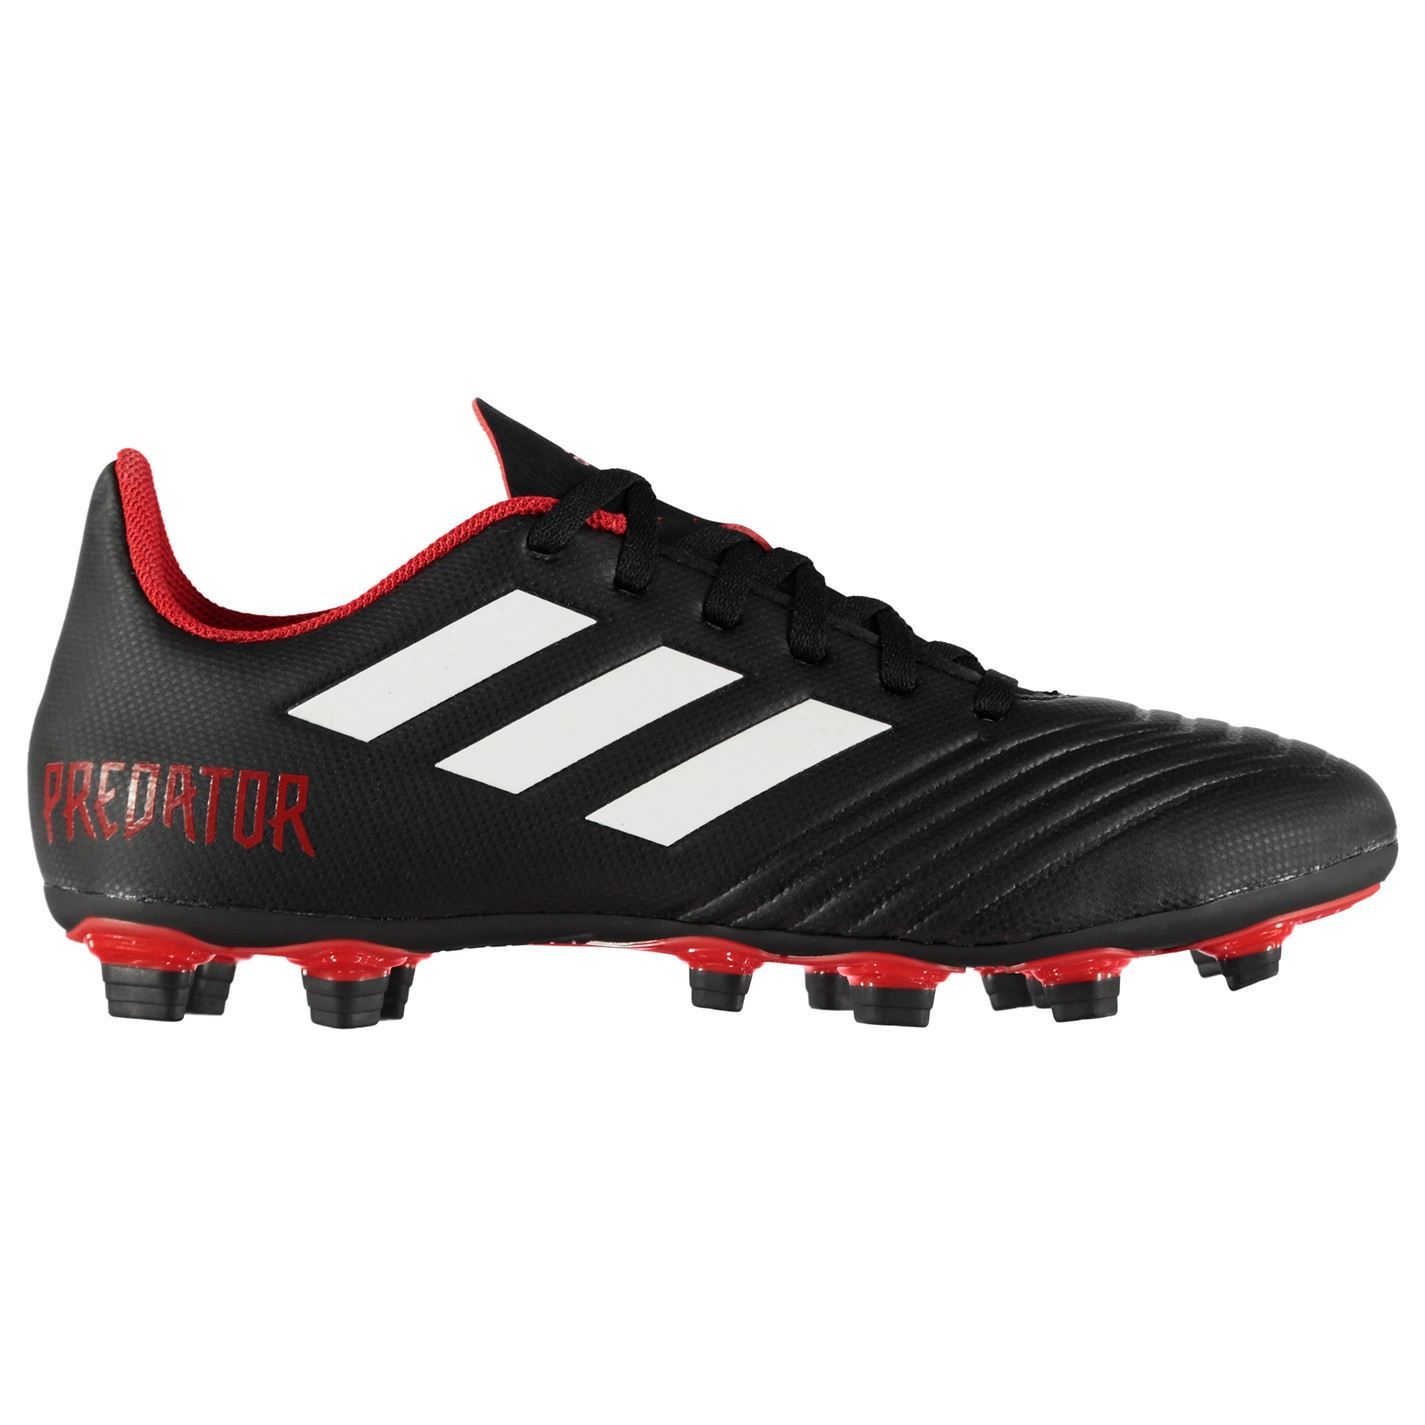 391d8357b55 ... Adidas Predator 18.4 FxG Firm Ground Football Boots Mens Soccer Shoes  Cleats ...